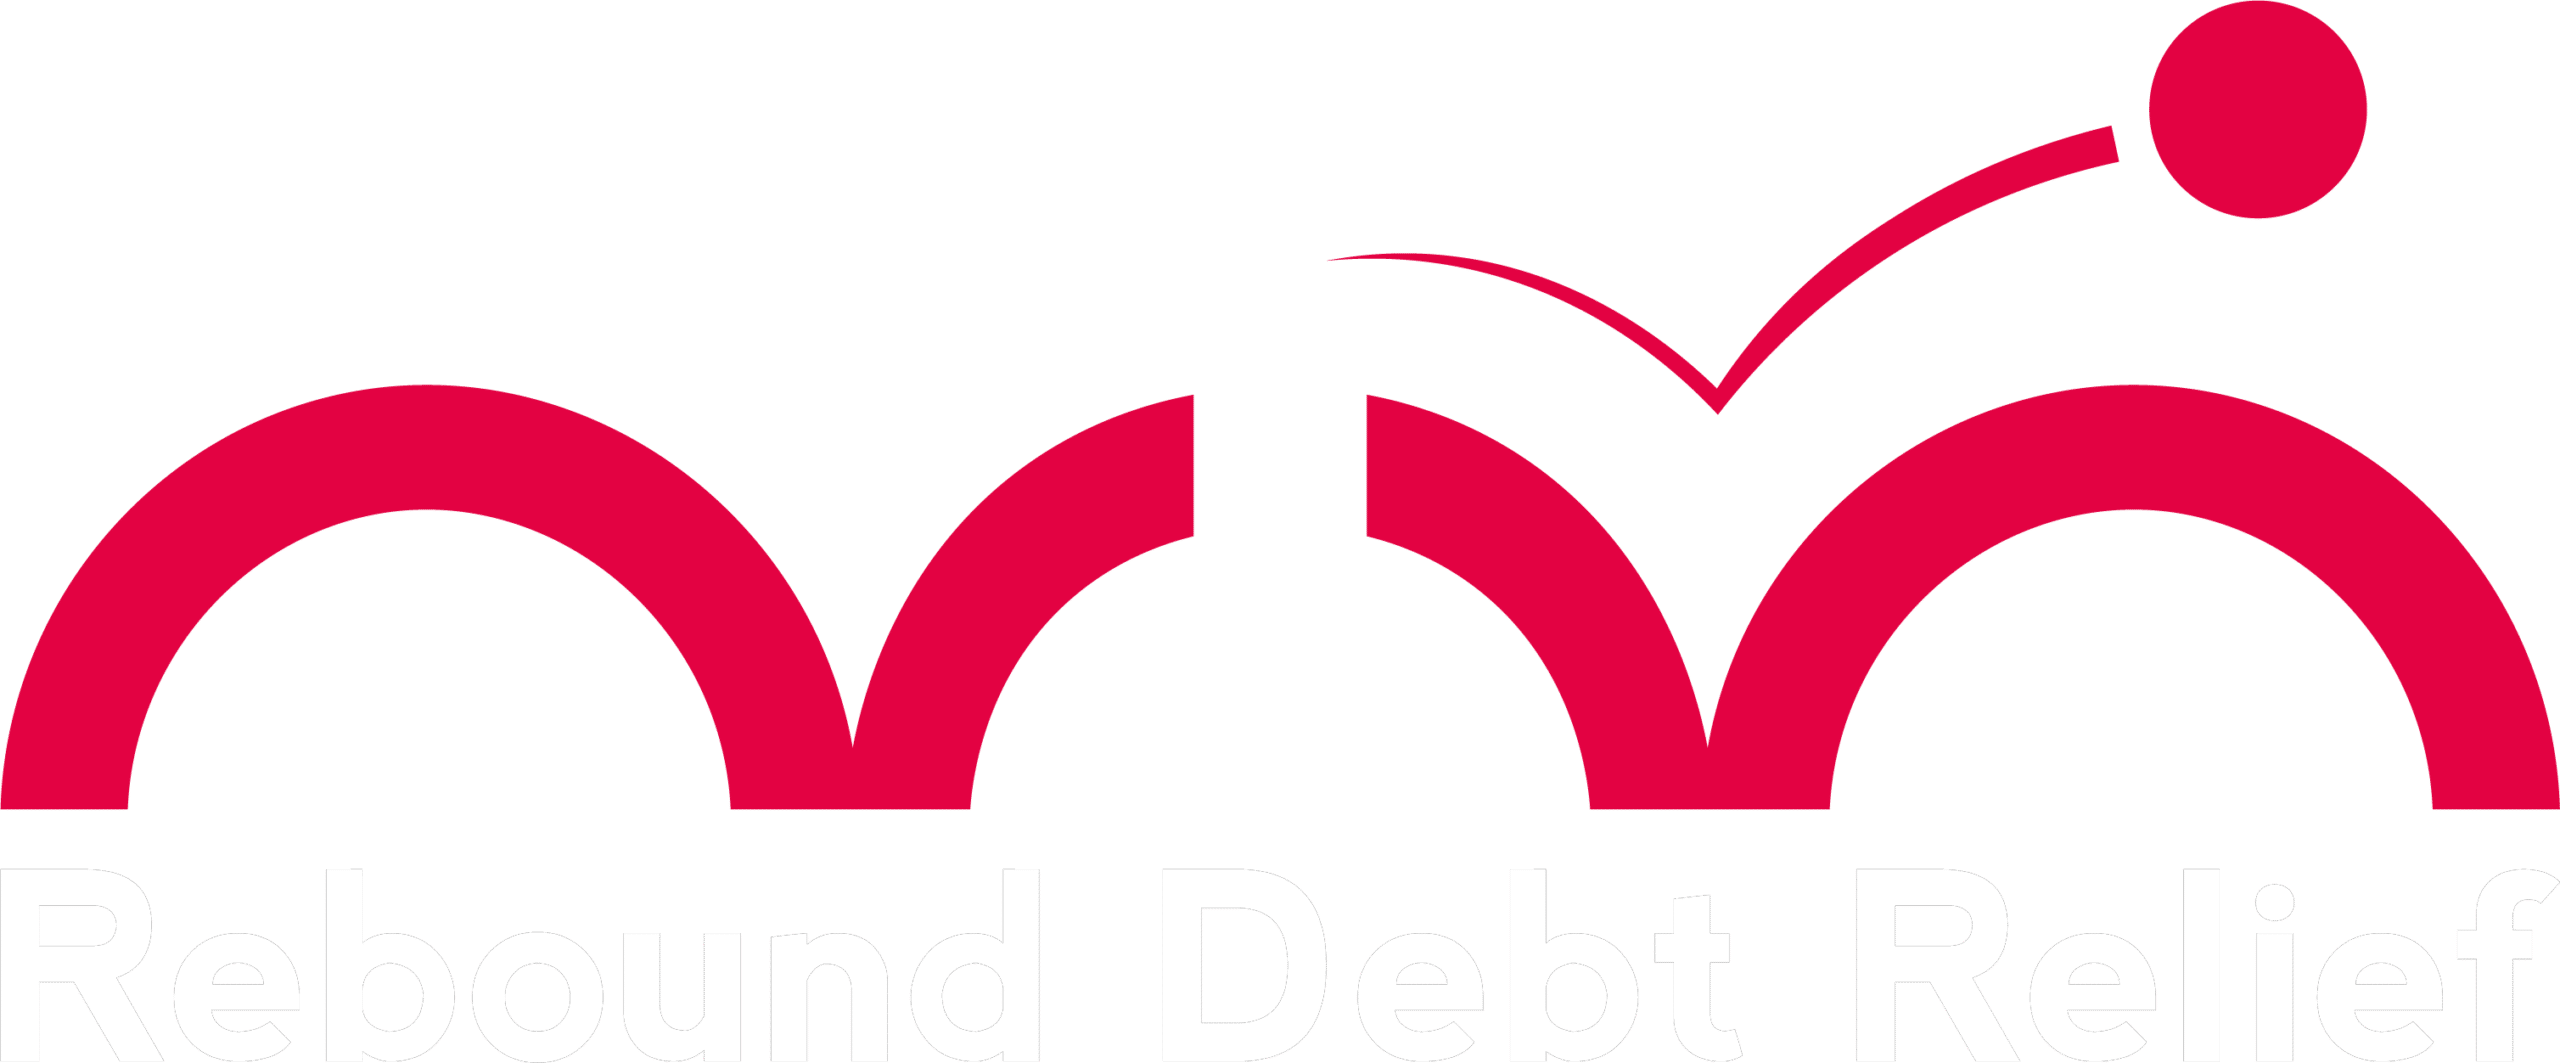 Missouri debt relief